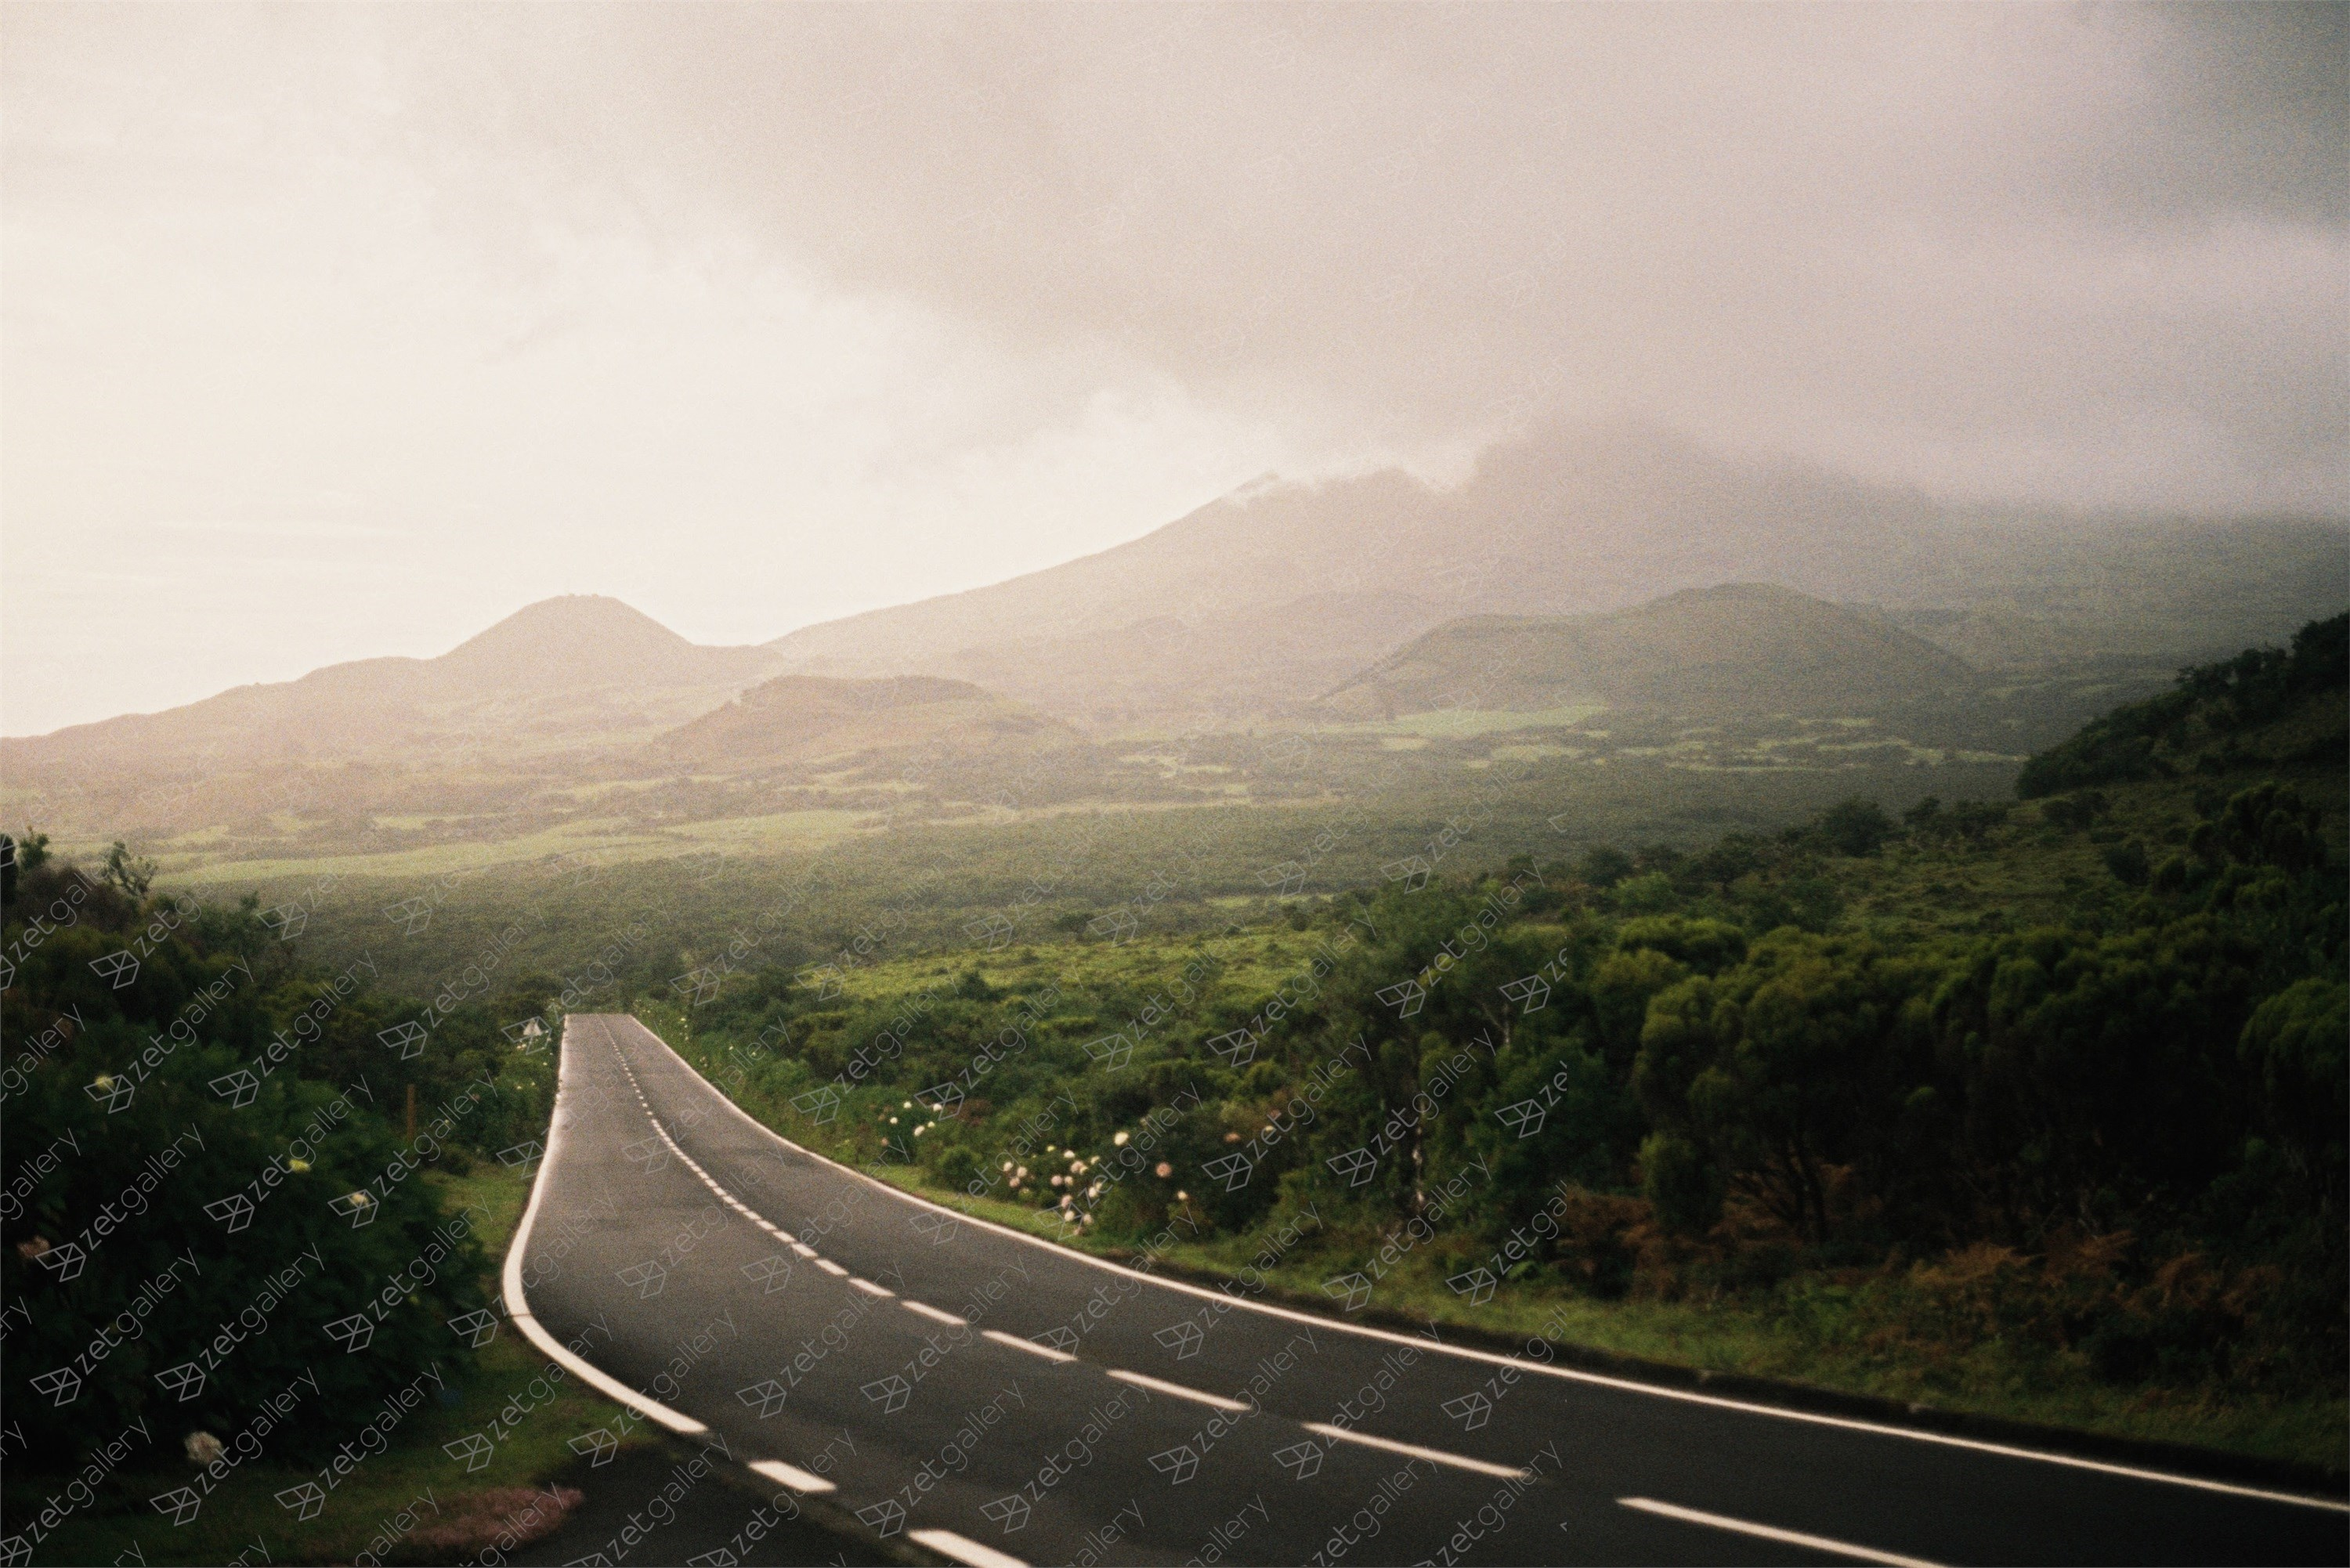 Uma estrada no meio do nada / A road in the middle of nowhere, original Landscape Analog Photography by Miguel De